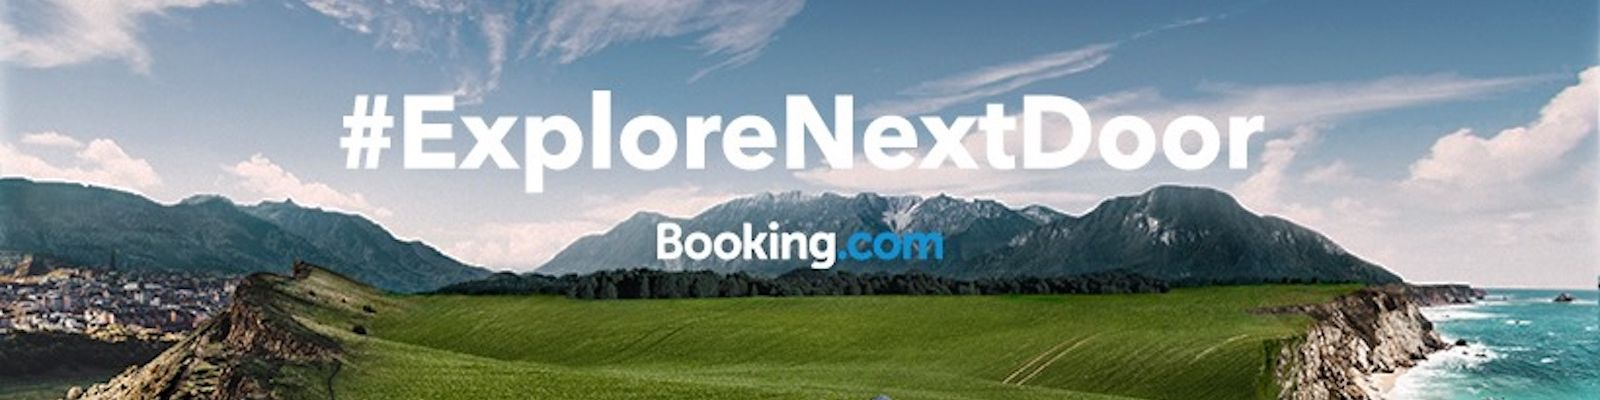 Code promo étudiant Booking.com